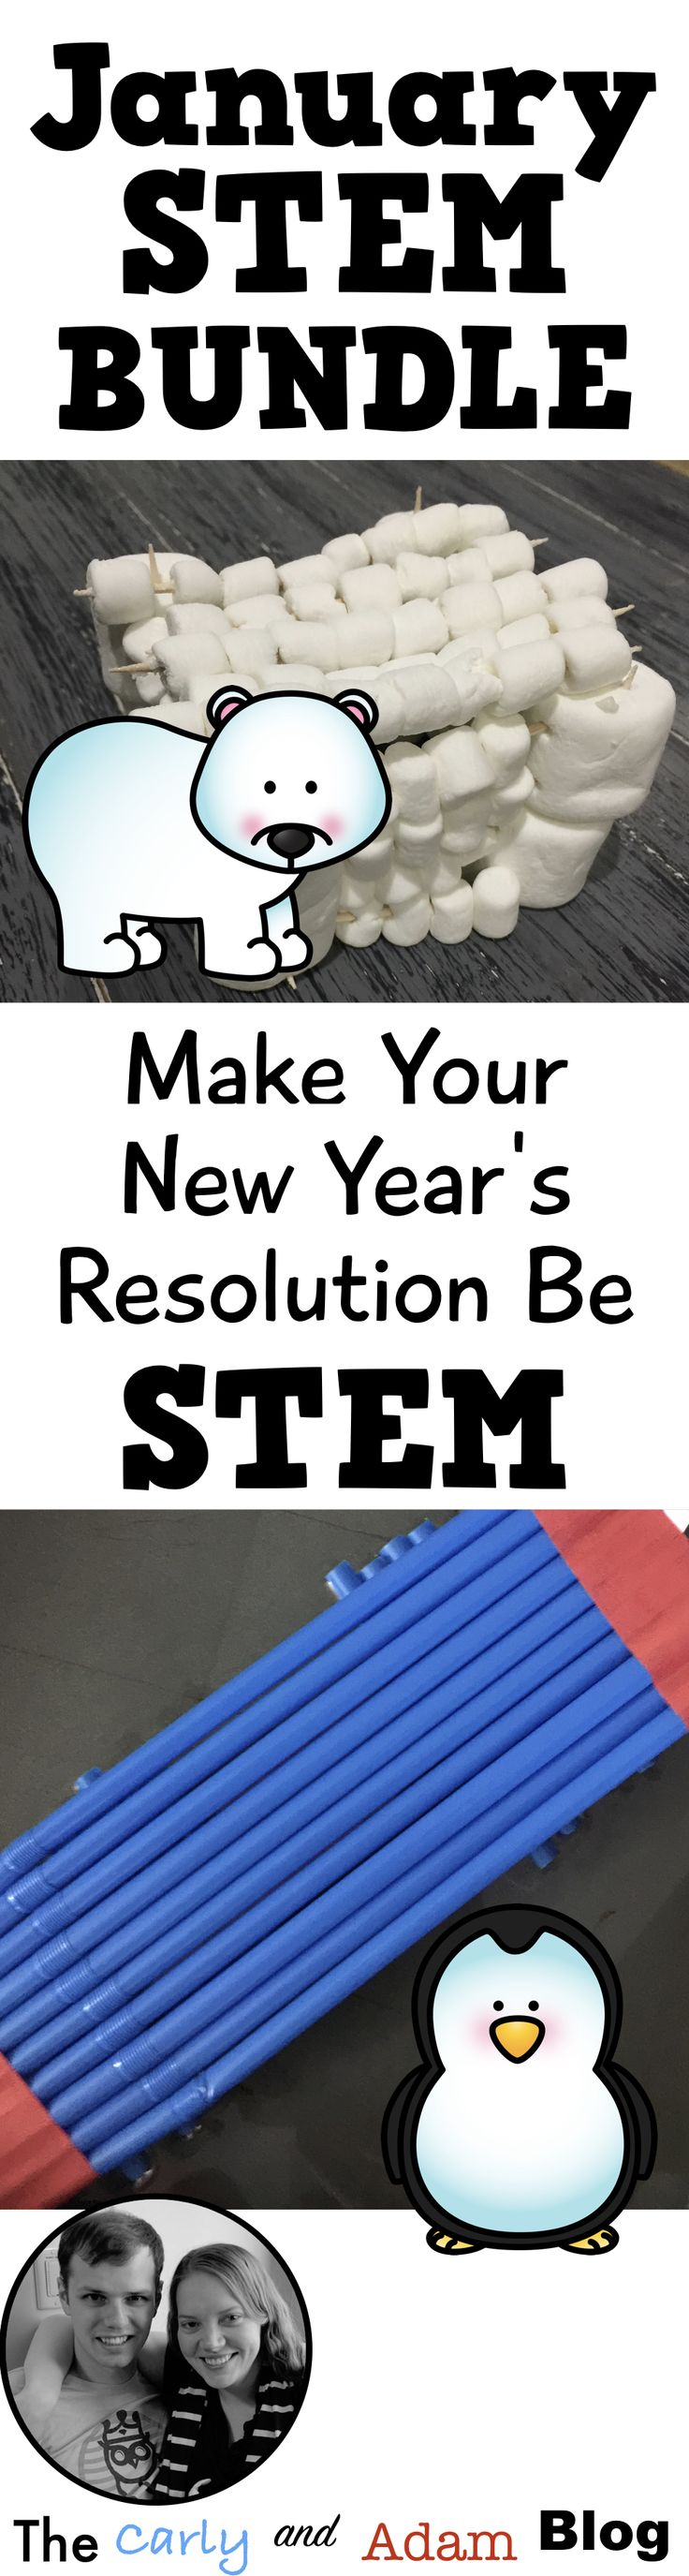 Integrate STEM into your classroom in the new year with January STEM activities. (Build a Polar Bear Den, Design a Snowflake, Build a Penguin Raft, and Martin Luther King Jr. STEM) From The Carly and Adam Blog